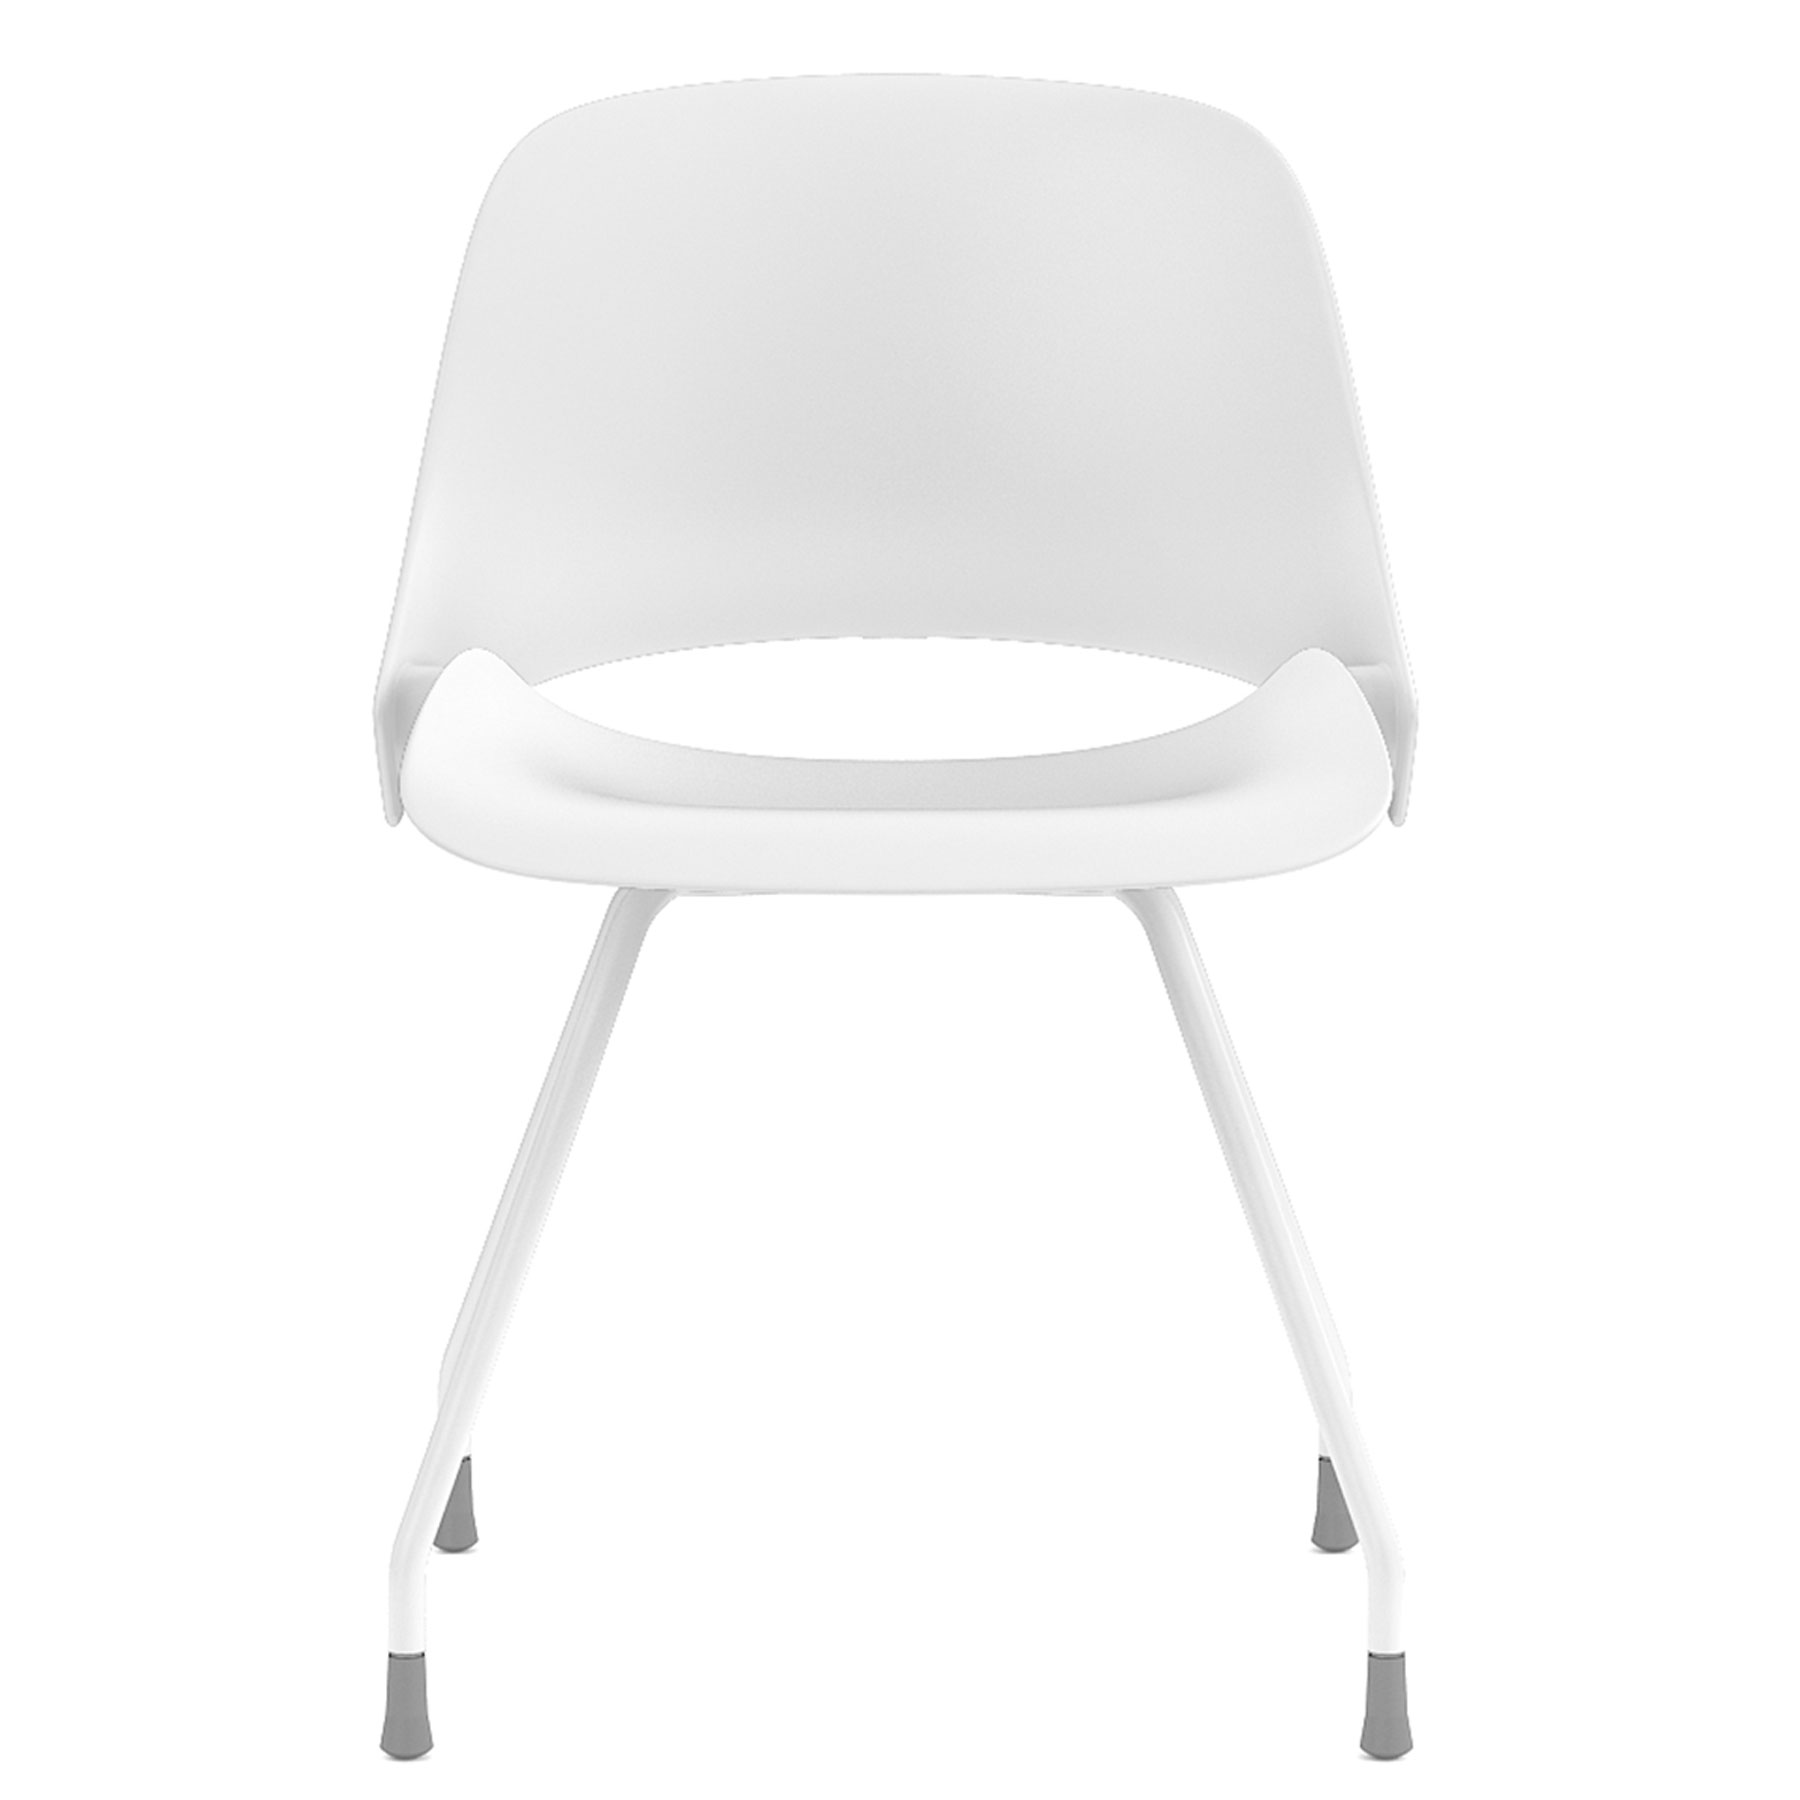 Swell Trea Desk Chair By Humanscale T100Www G Pabps2019 Chair Design Images Pabps2019Com